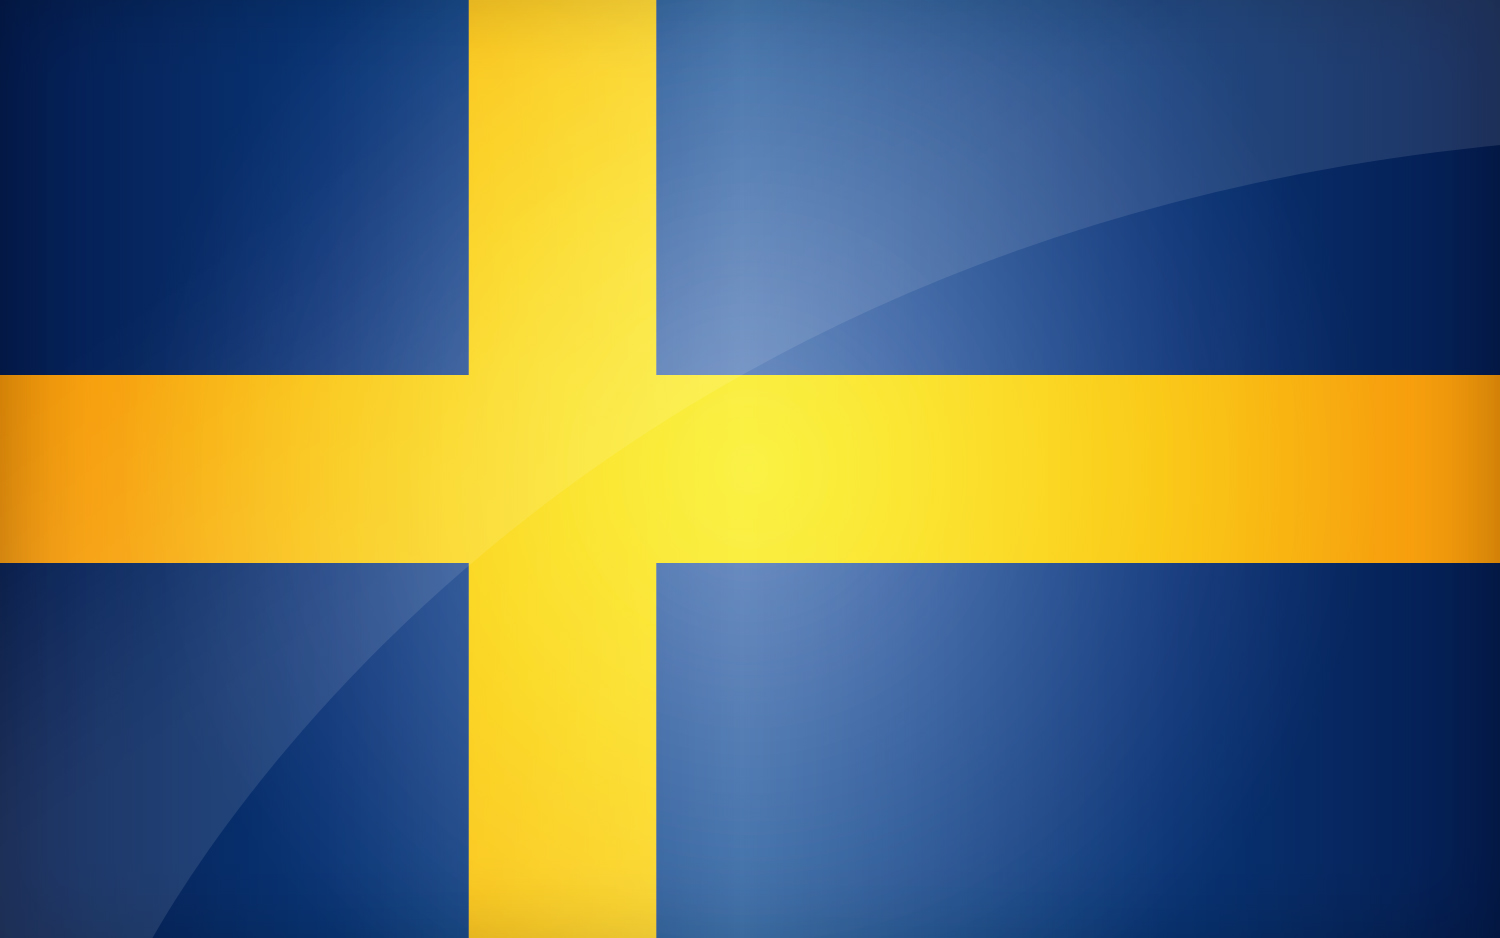 flag Abba swedish